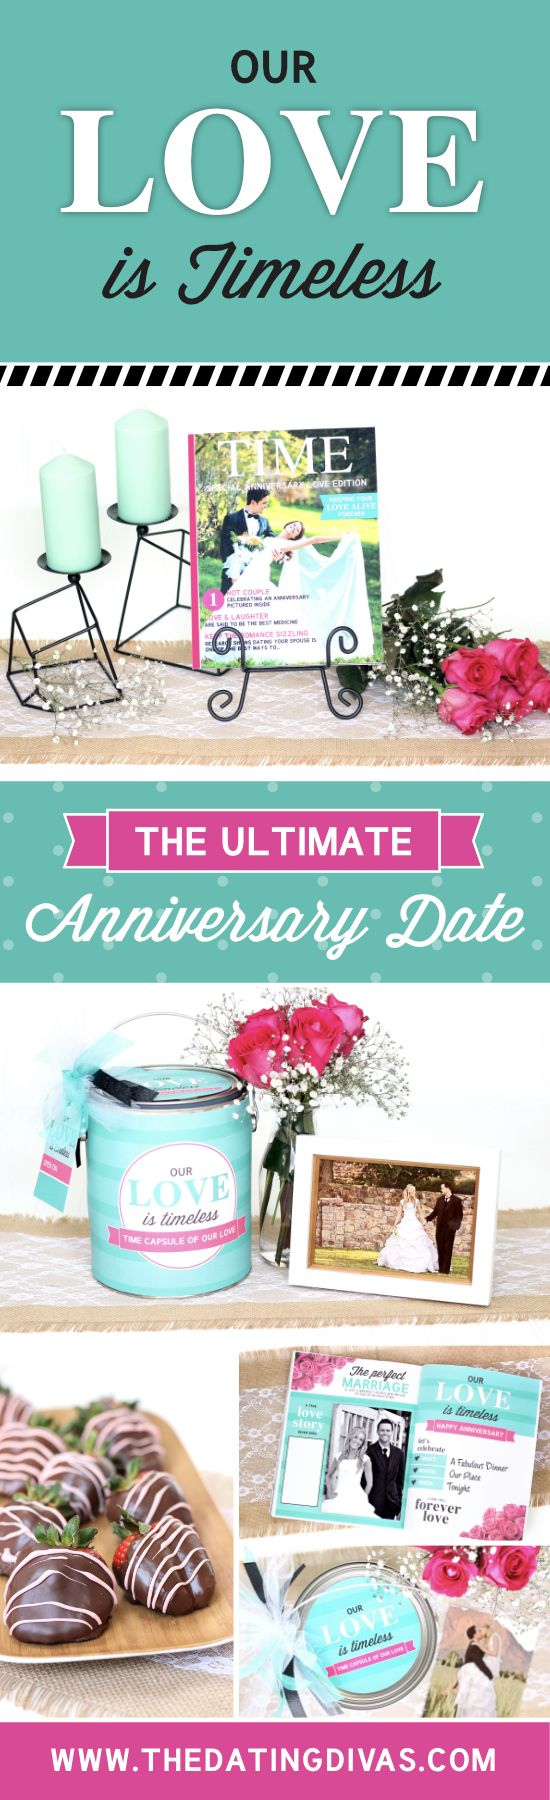 687 best anniversary ideas images on pinterest dating divas a box our love is timeless themed romantic anniversary date negle Image collections